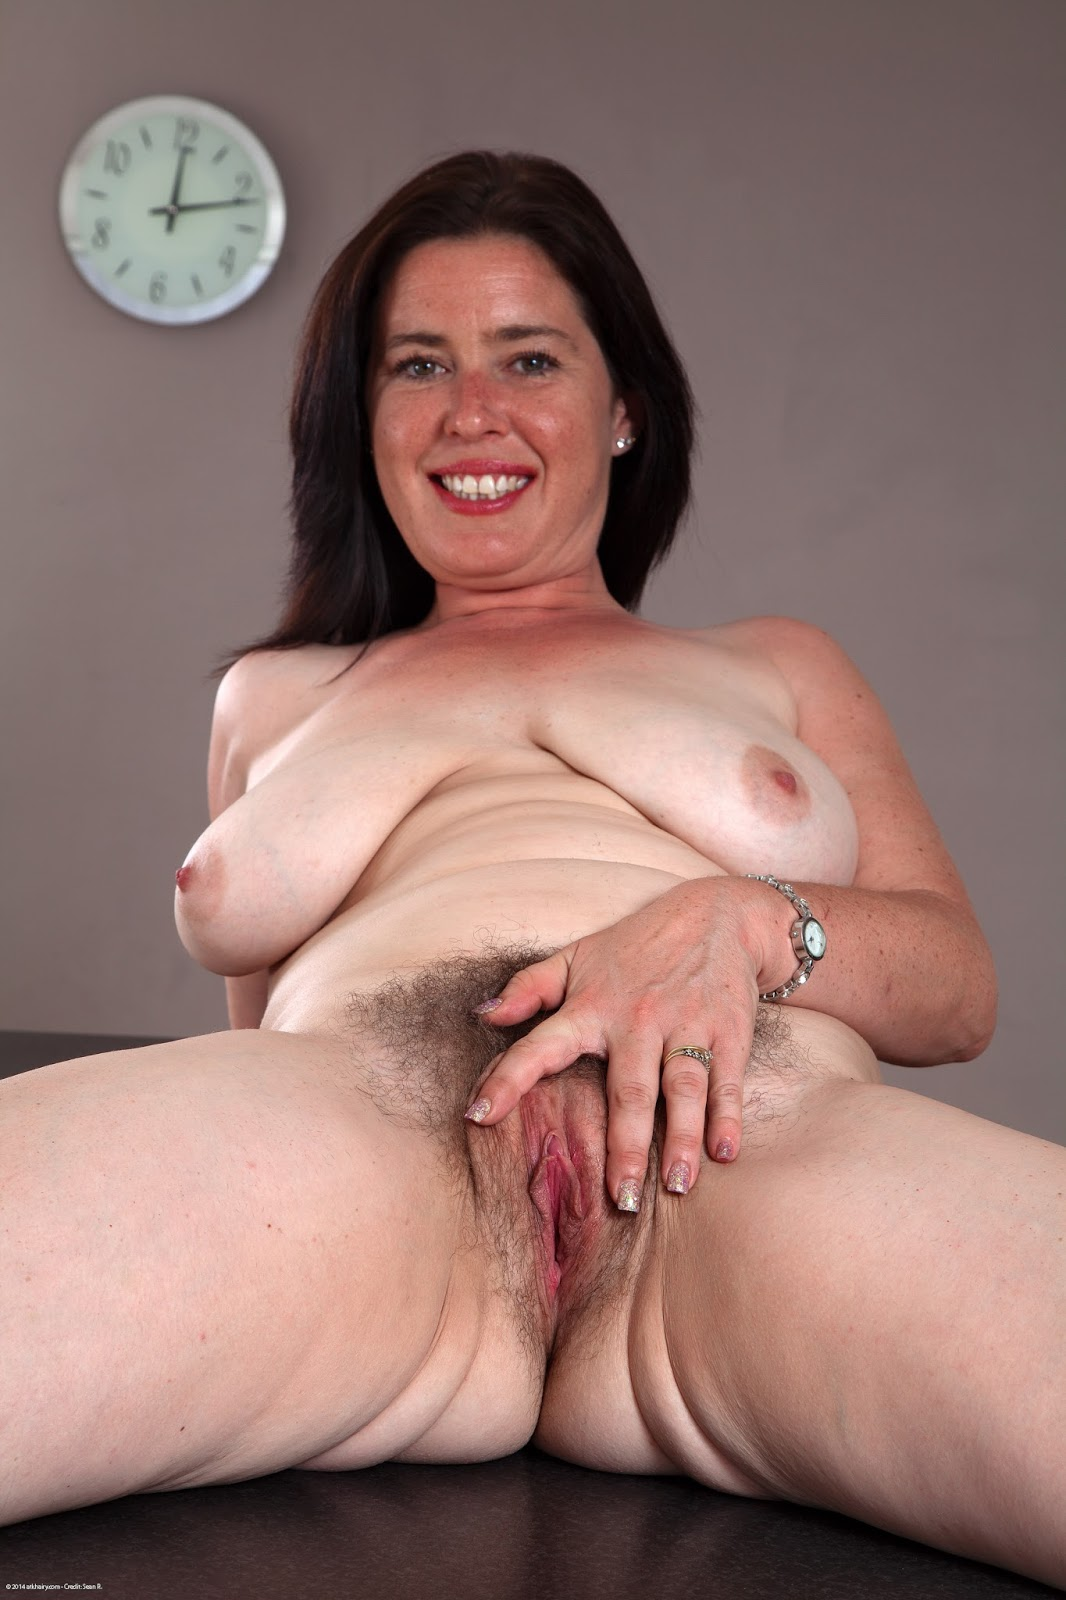 08 vera delight granny likes it rough anal - 1 1